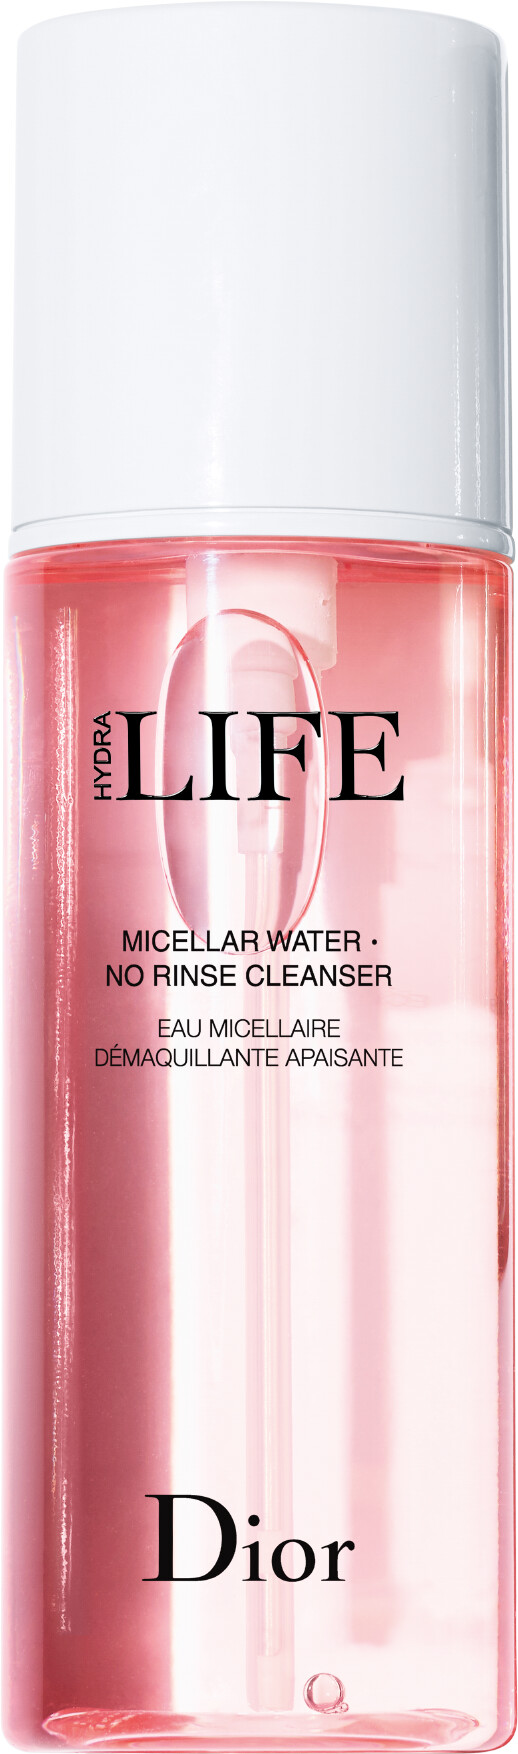 Dior HYDRA LIFE Micellar Water · No Rinse Cleanser 200ml